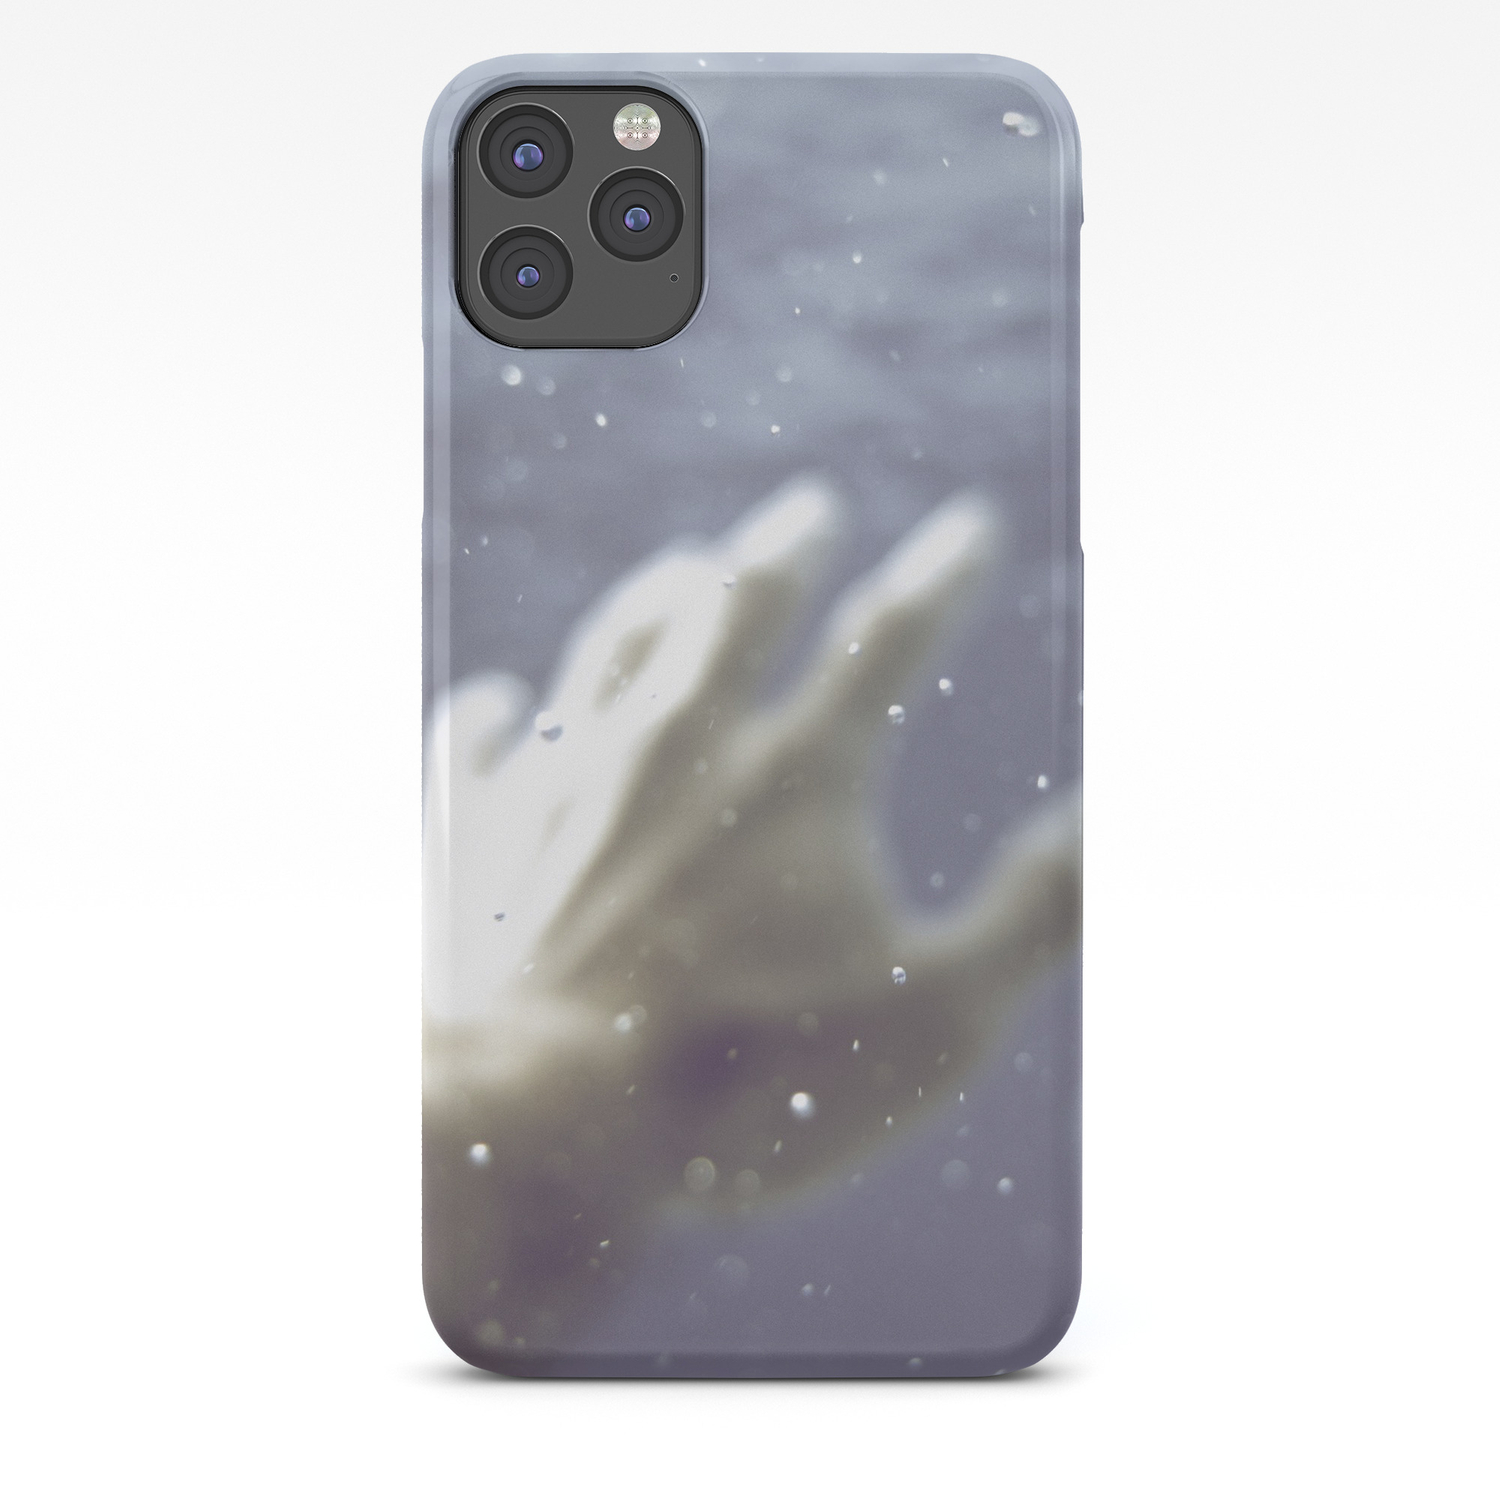 Drowned in space iPhone 11 case